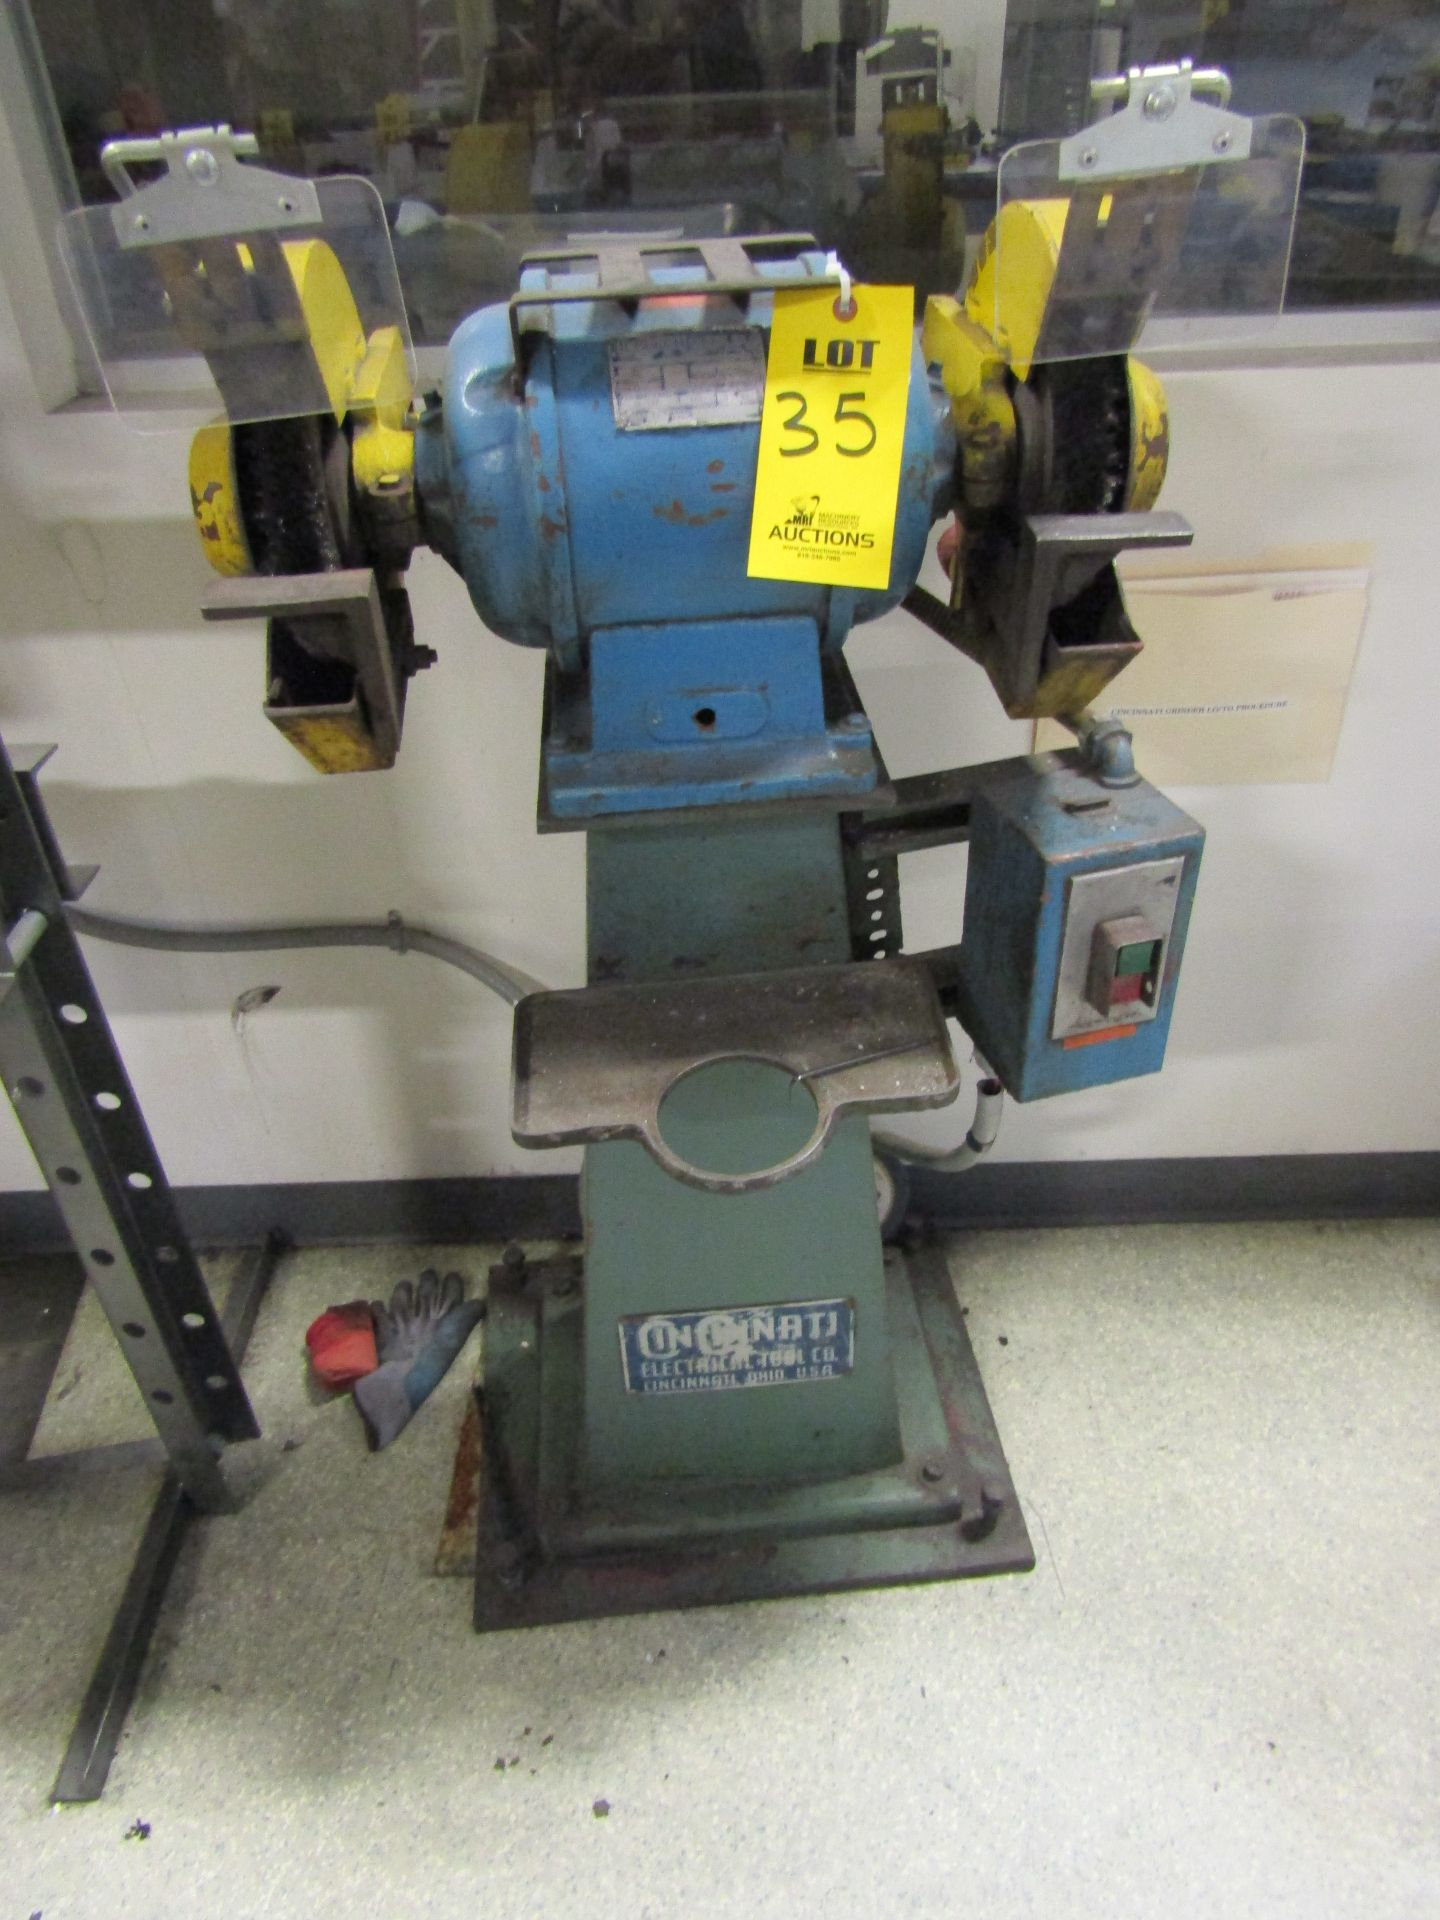 Lot 35 - CINCINNATI Pedestal Grinder, Model 104, GPOA TYPE, 1 HP, 1750 RPM, SERIAL 229938